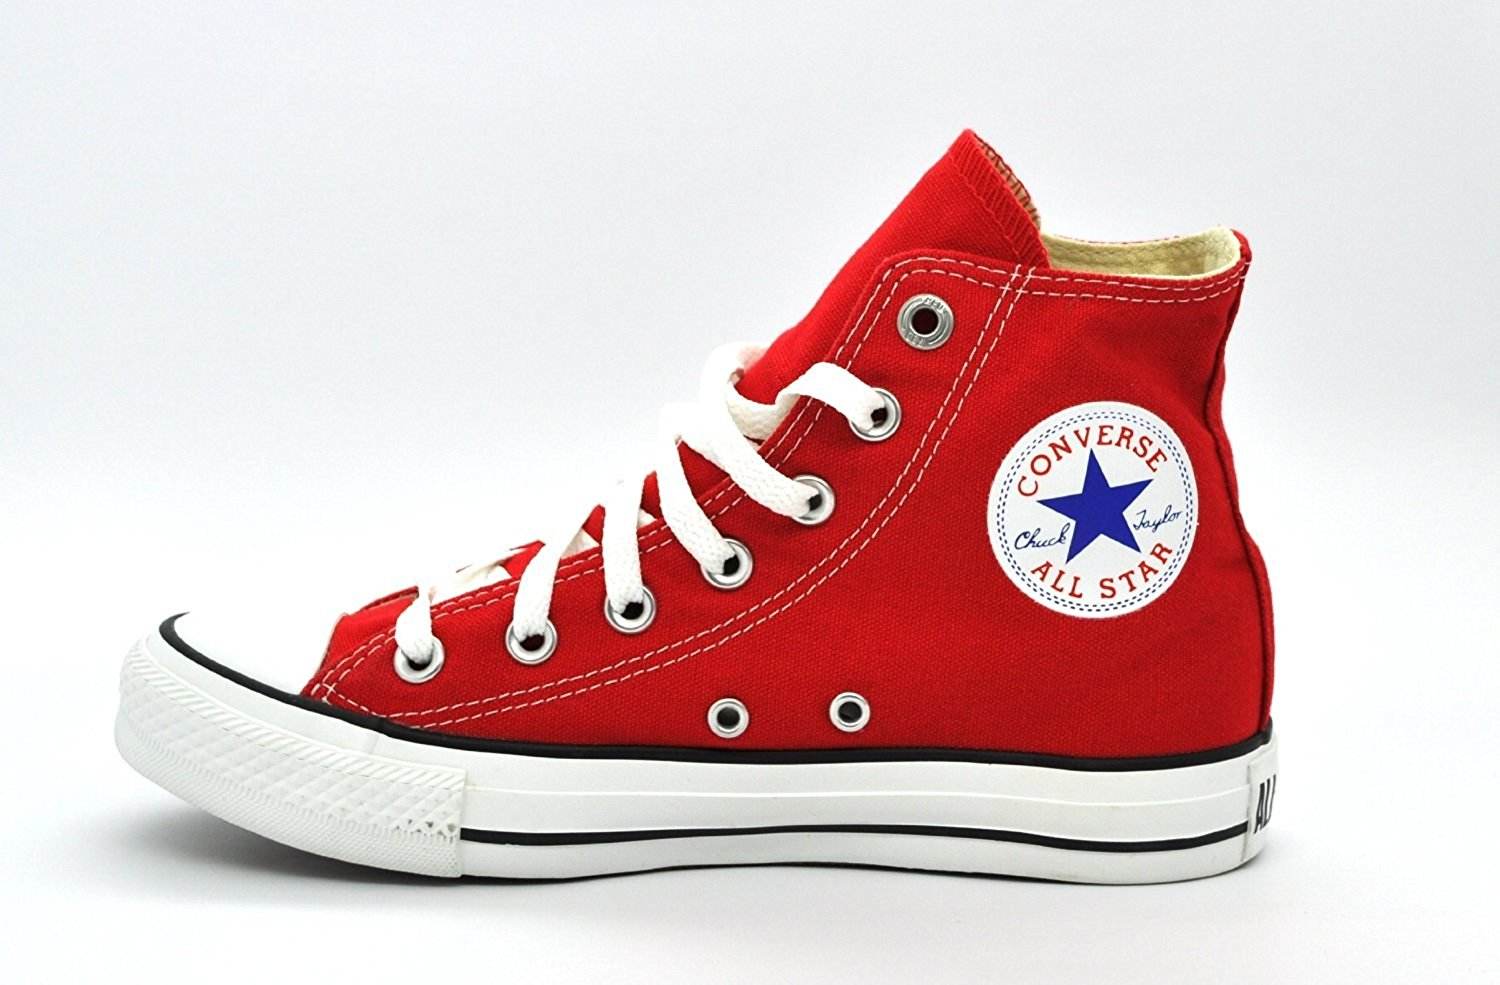 Converse Shoes High Cut